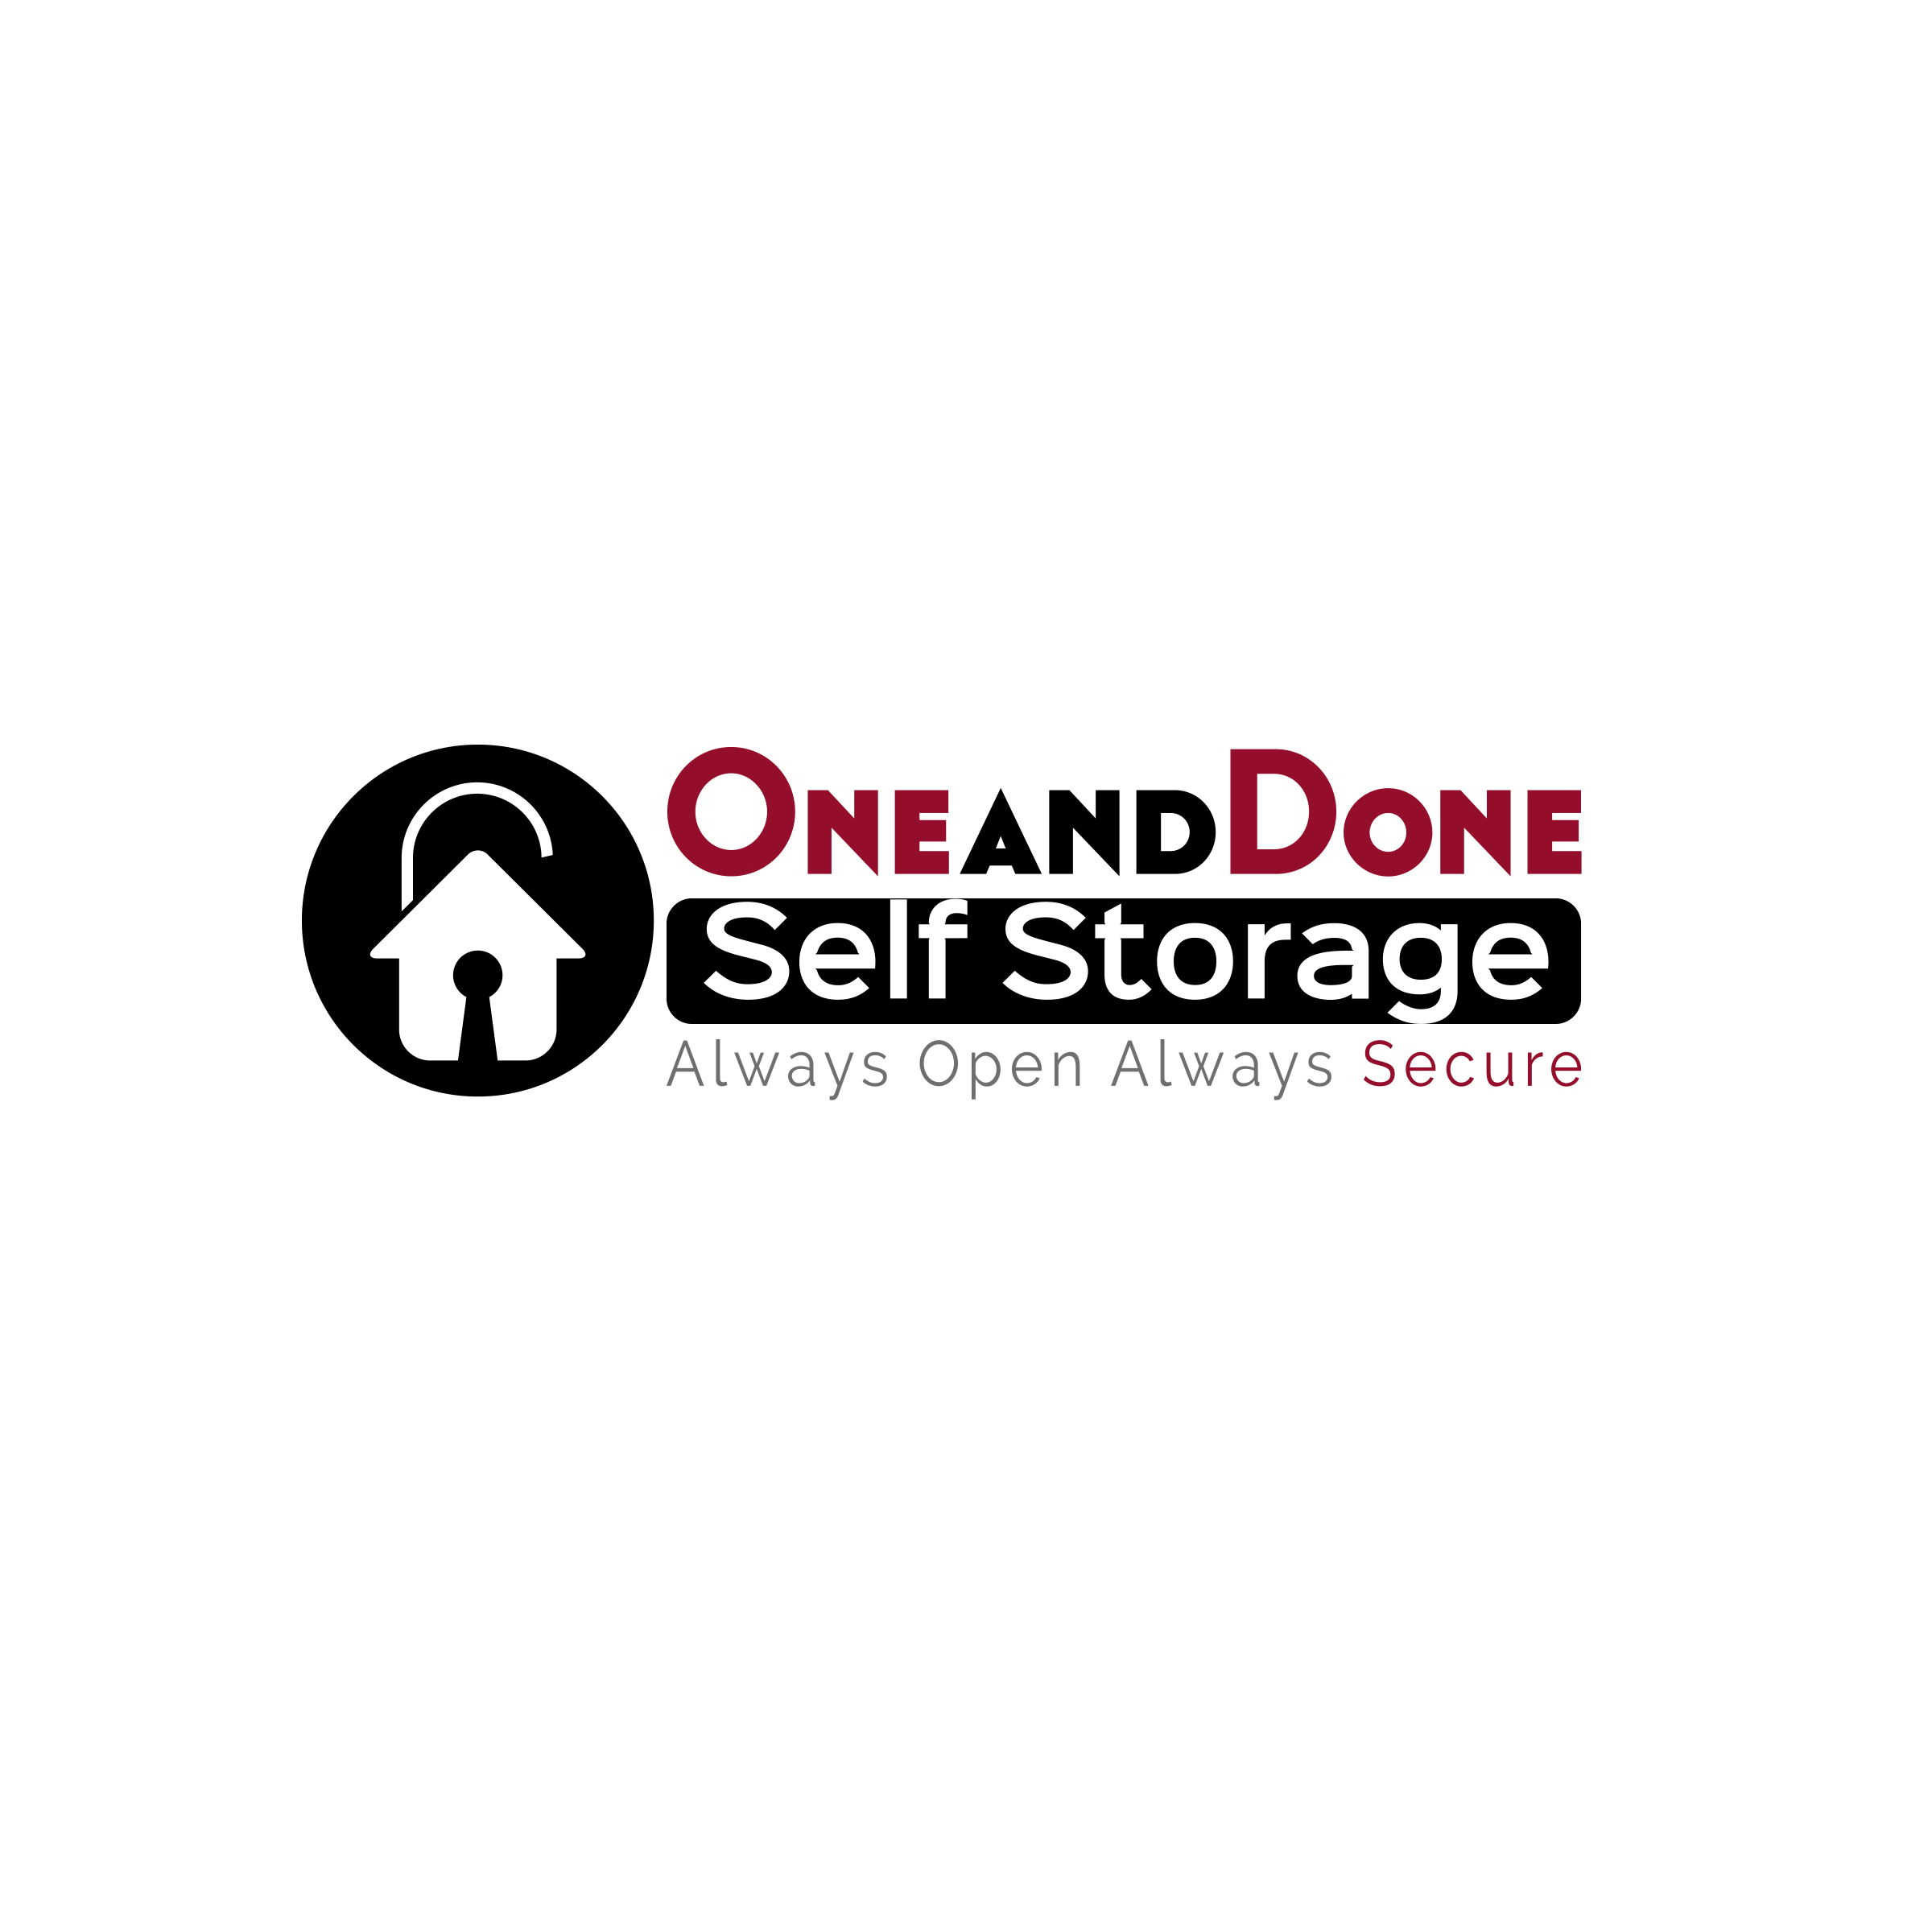 One and Done Self Storage